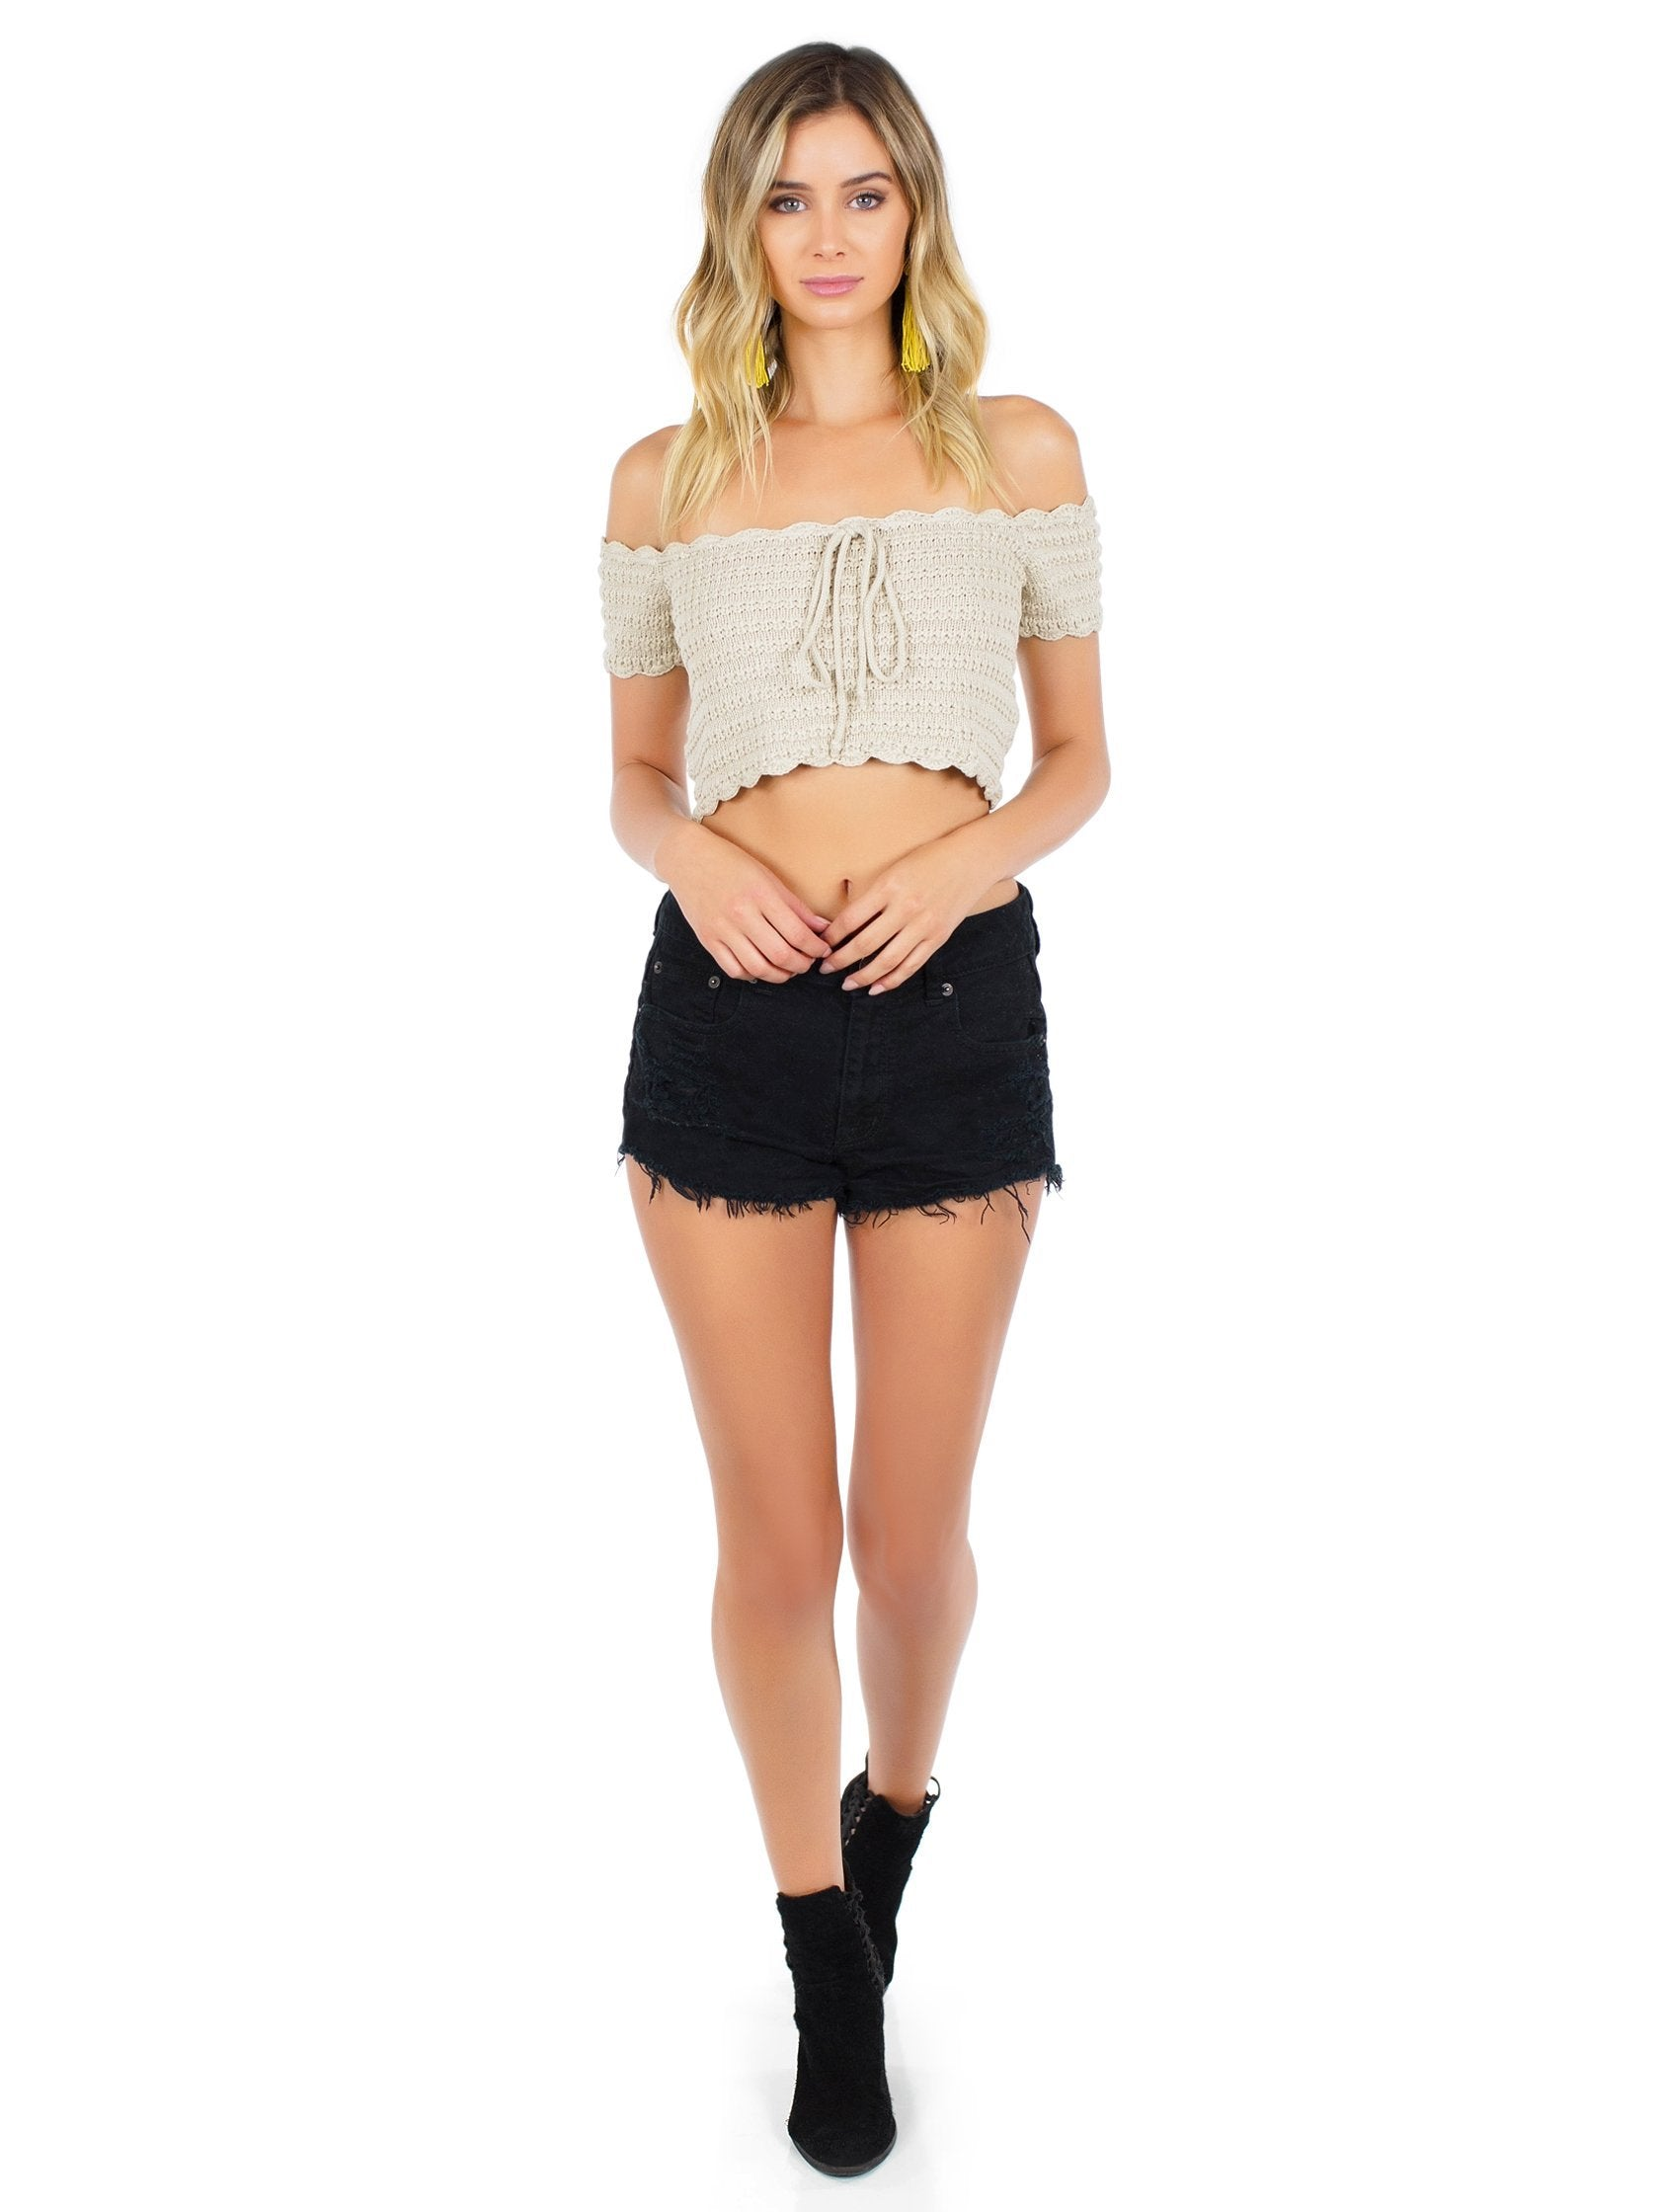 Girl wearing a top rental from WYLDR called Break The Rules Crochet Crop Top